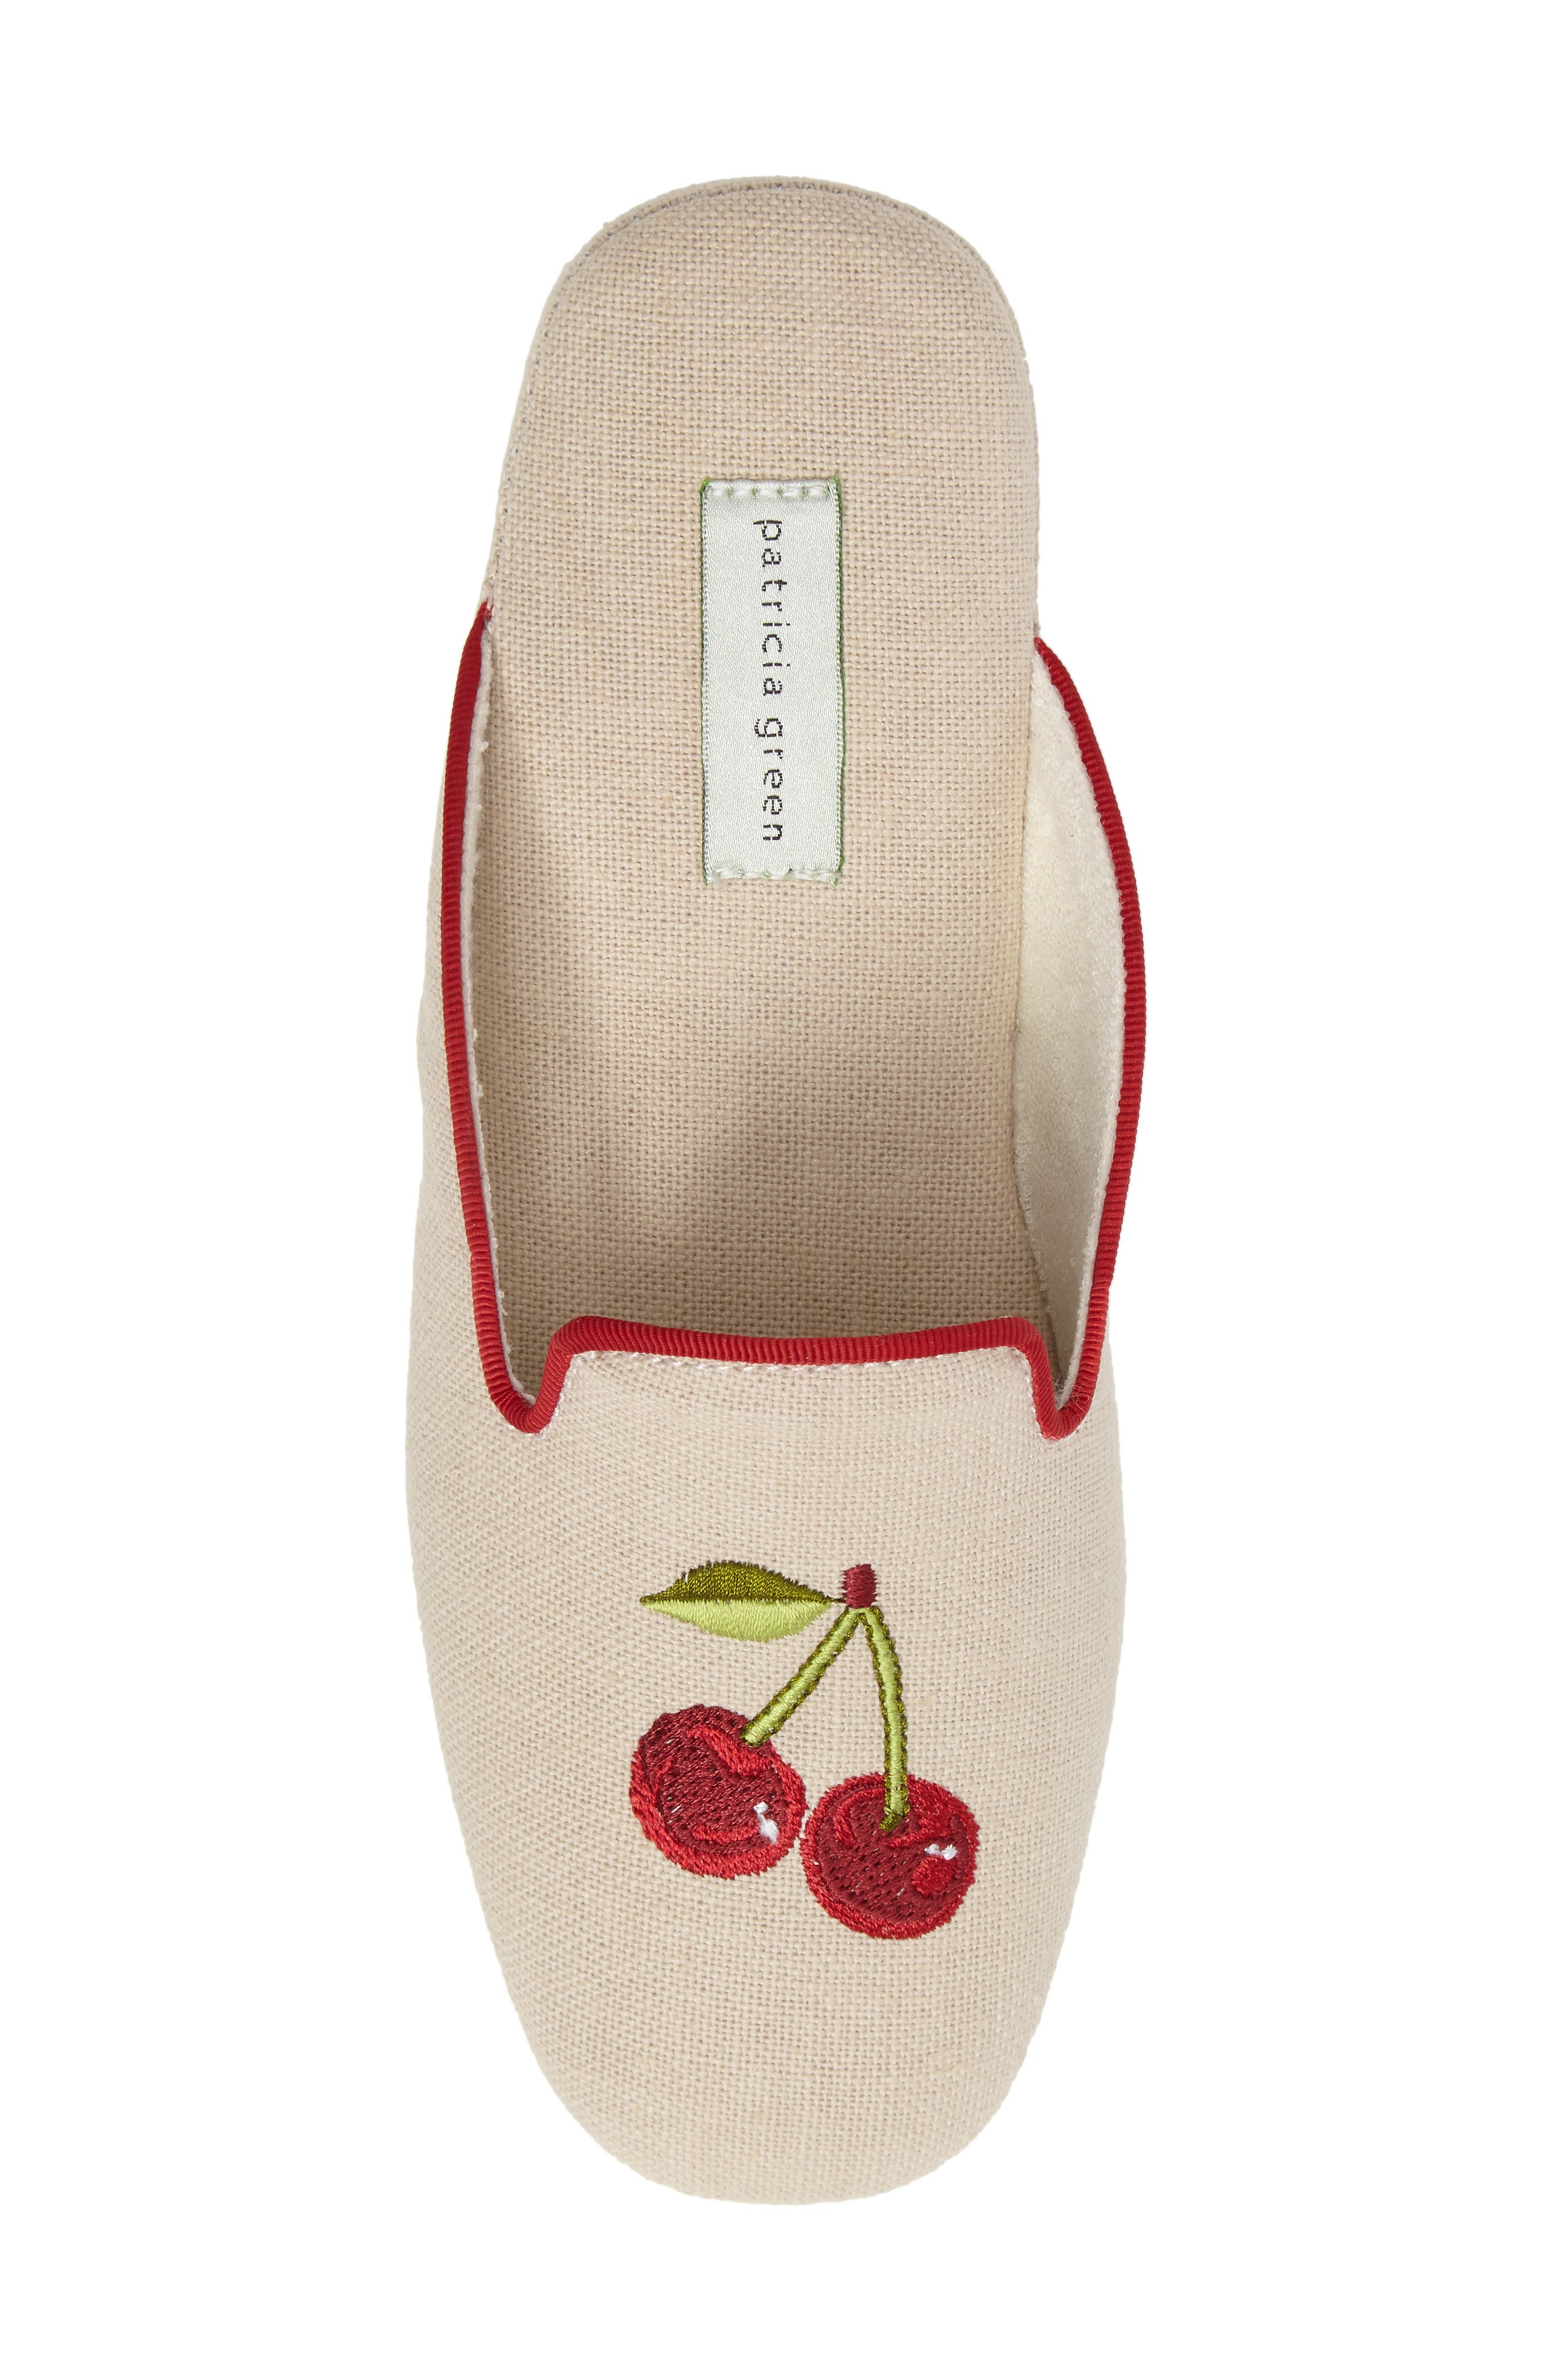 Cherries Slipper,                             Alternate thumbnail 5, color,                             Natural Fabric